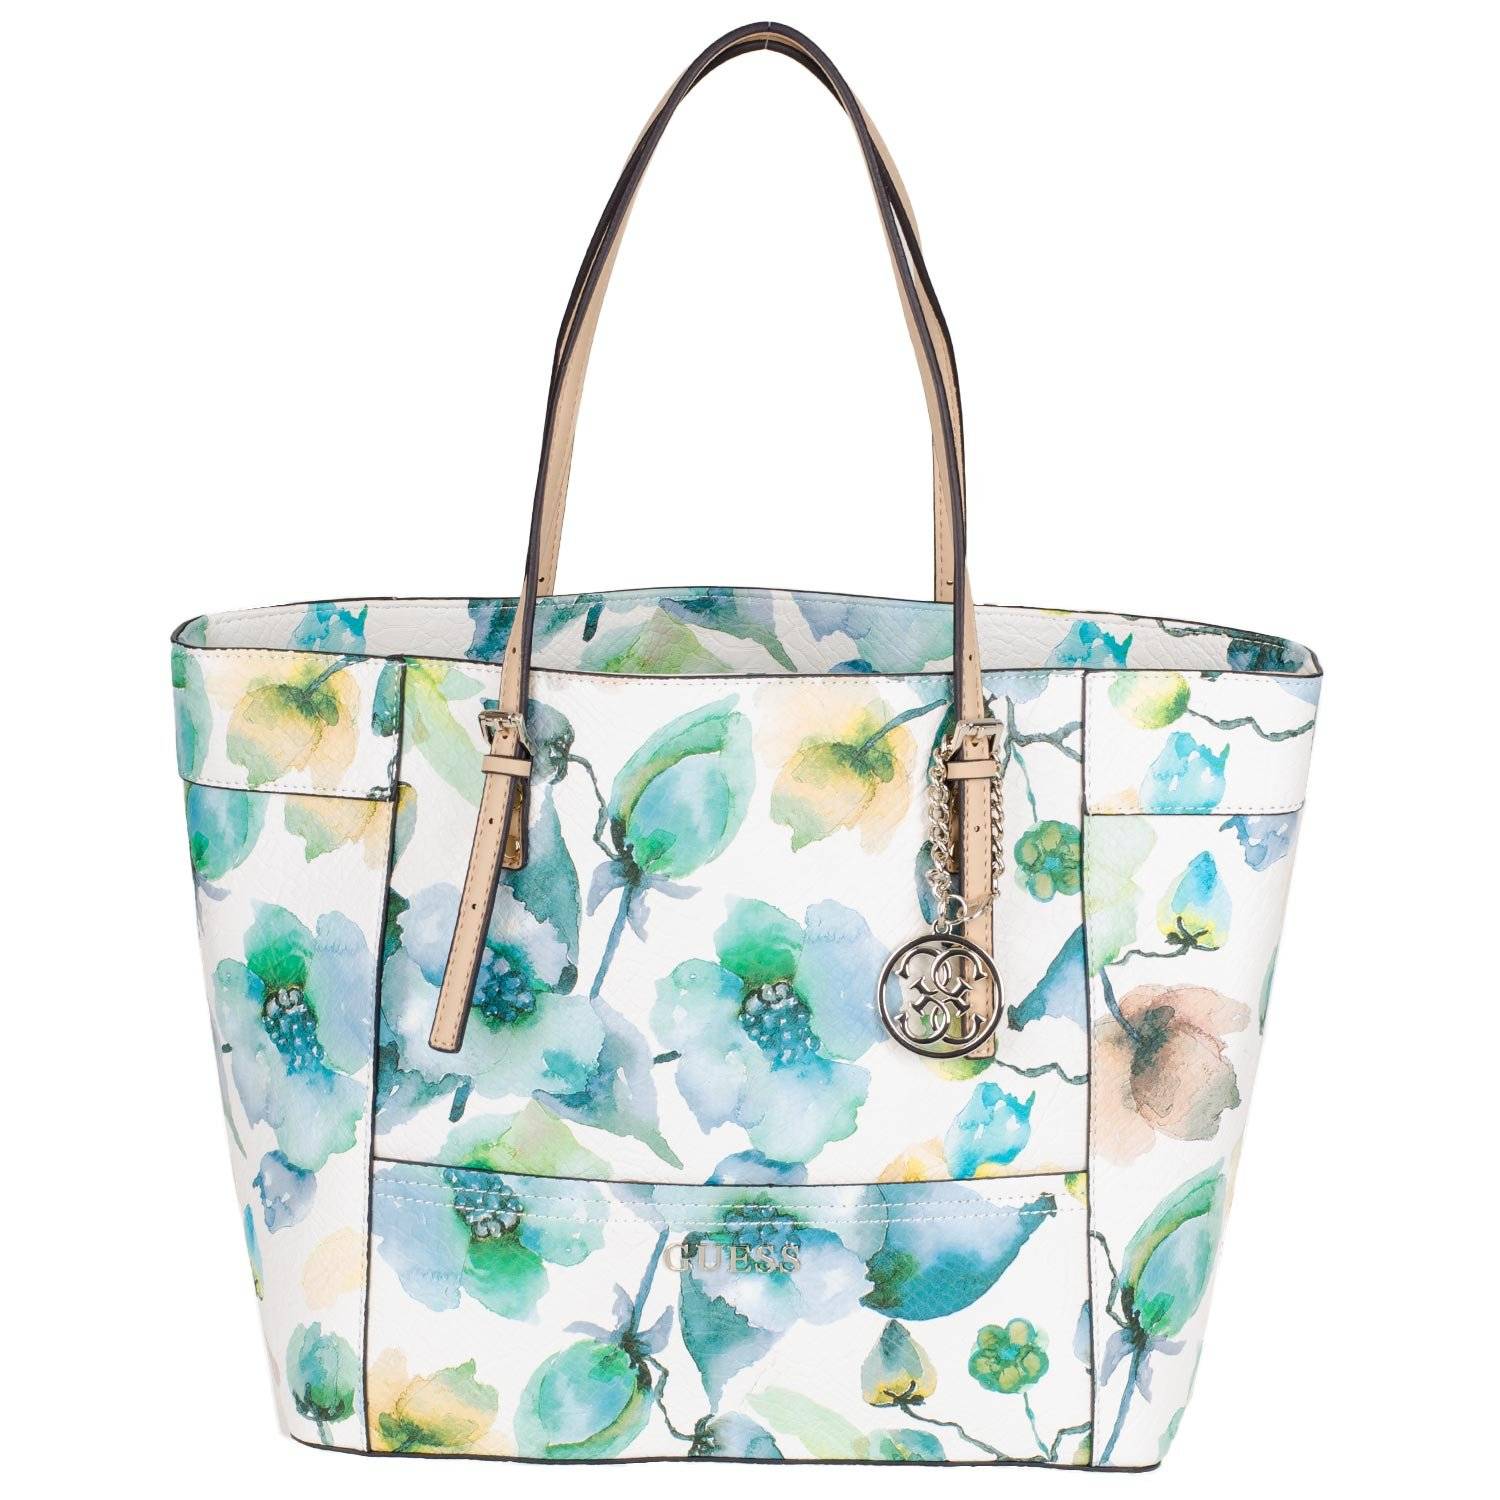 Guess Delaney Medium Classic Tote VY453523?Arm Candy 40x28x13?cm Sky Multi